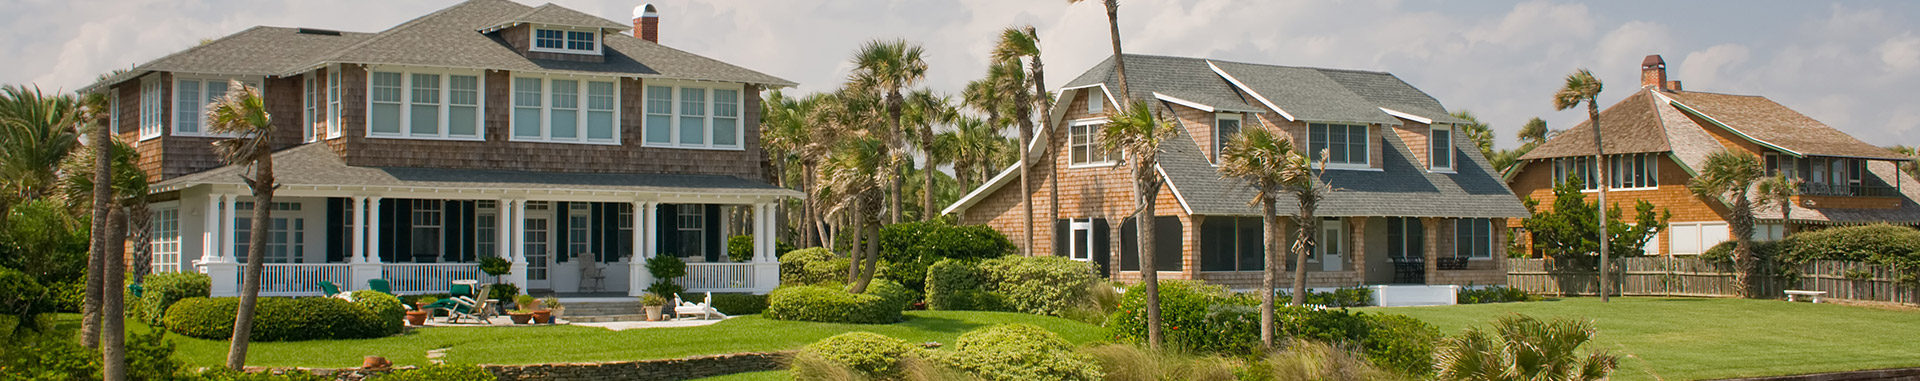 Beach Homes For Sale